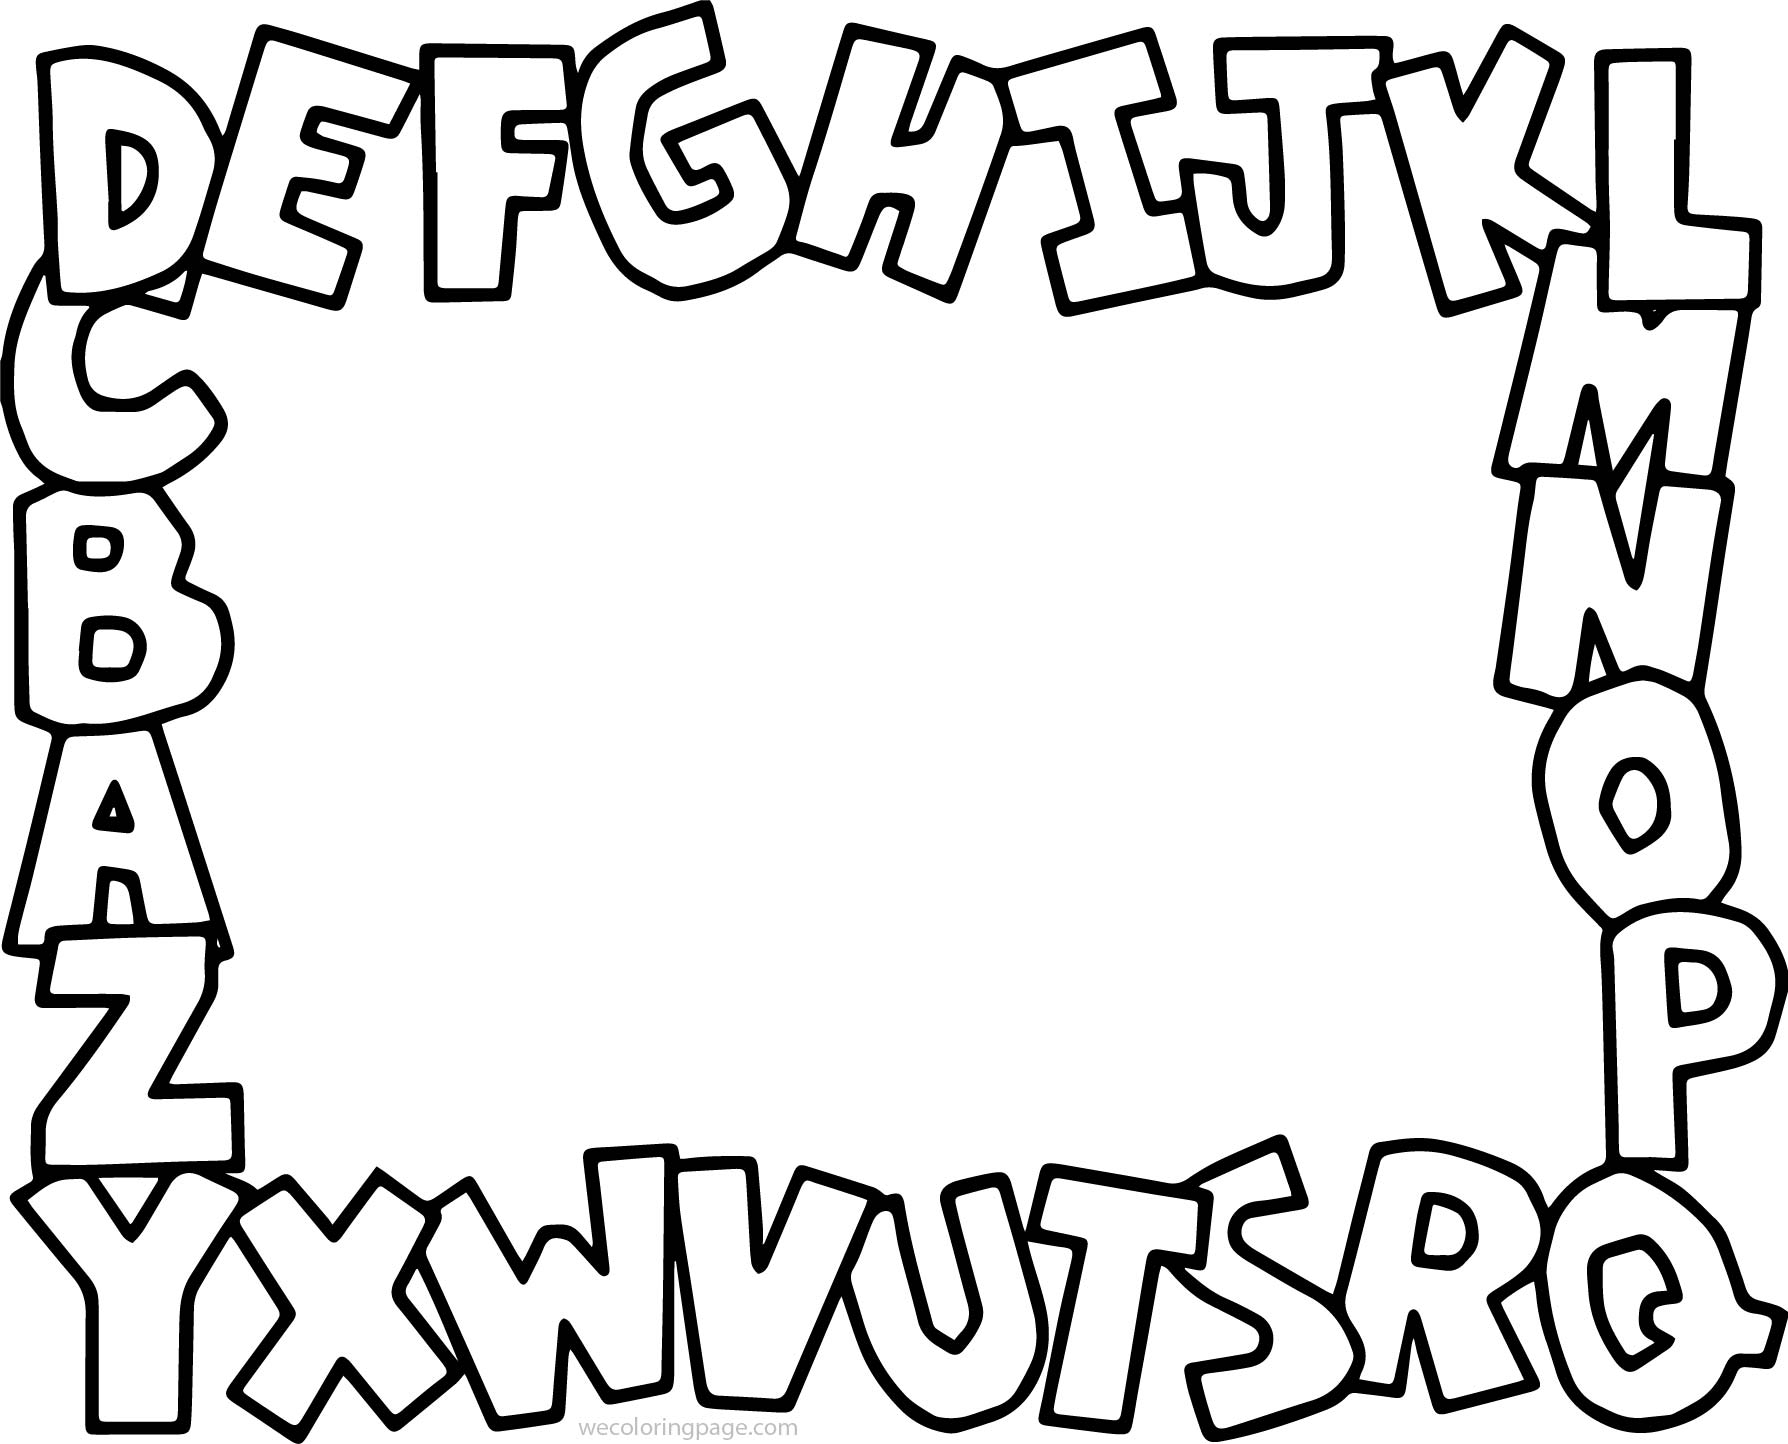 Abc Coloring Pages - alphabet abc coloring page